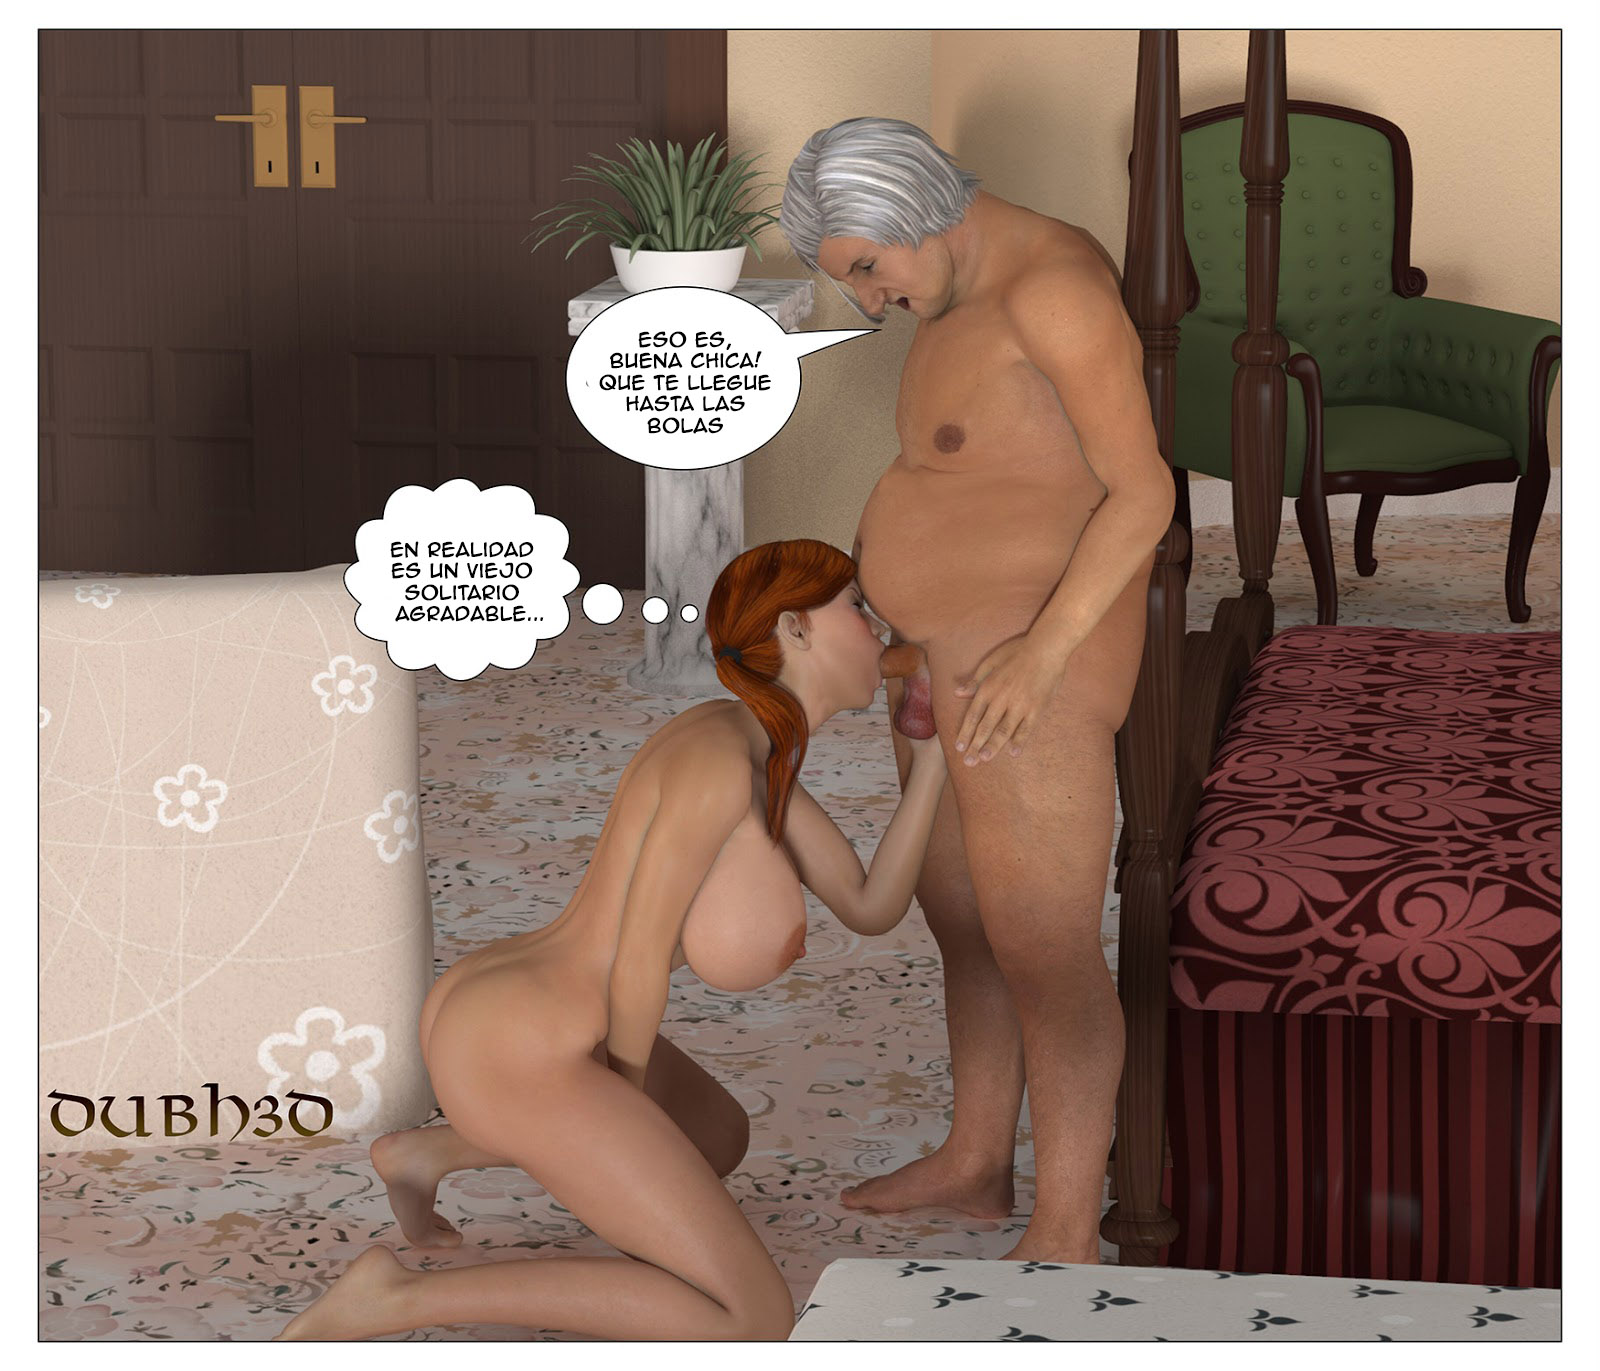 Old man porn toon really. happens